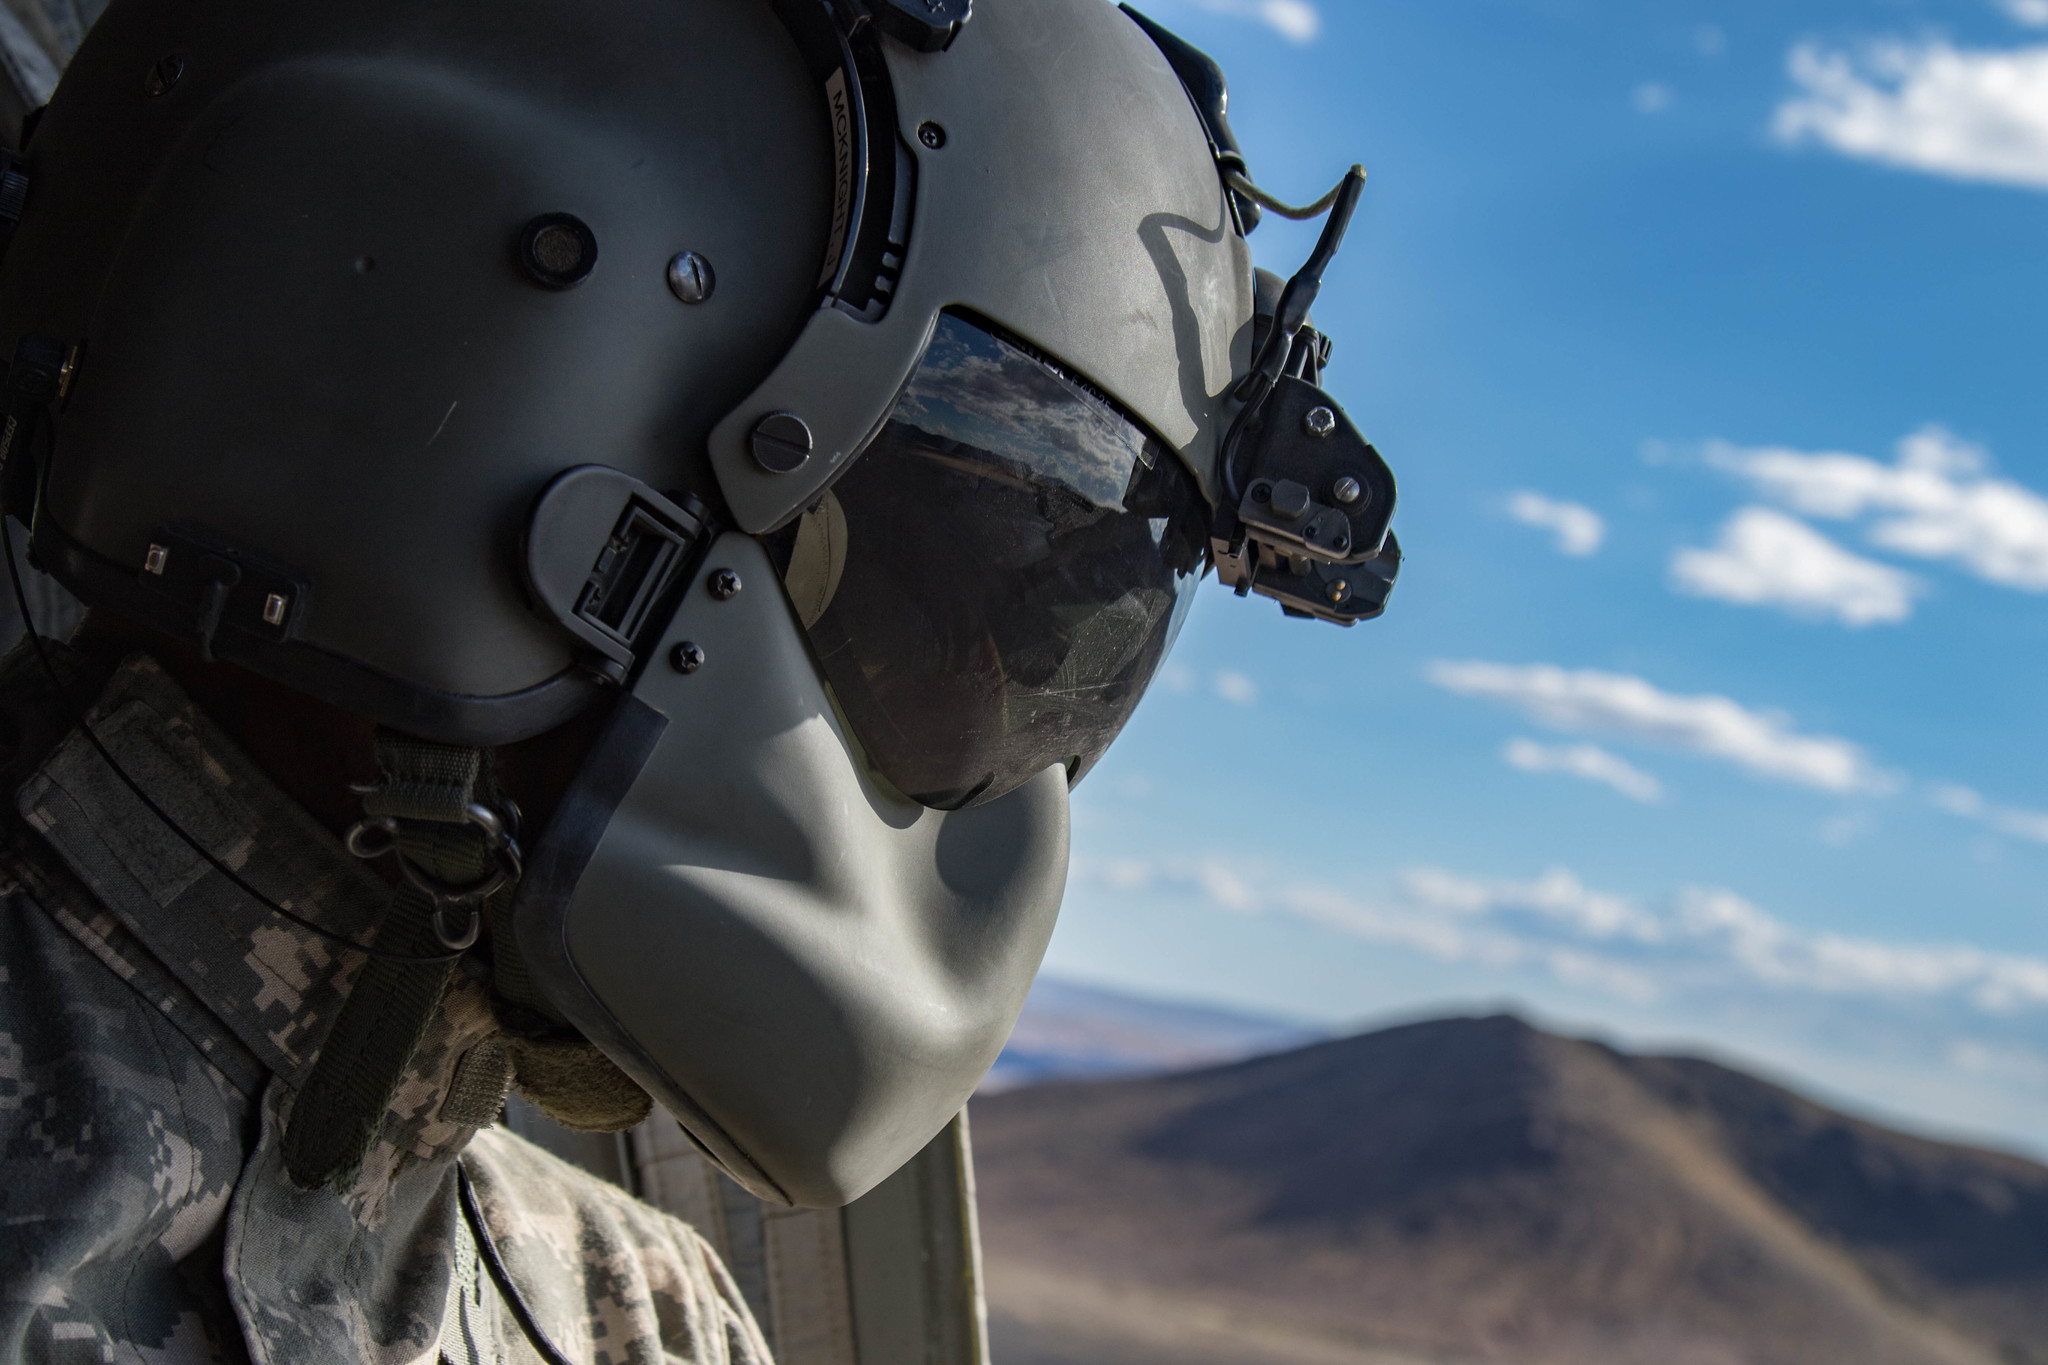 Oregon Army National Guard Sgt. James McKnight surveys the area out of the side window of the CH-47F Chinook during a dust landing certification flight at the National Training Center in Fort Irwin, Calif., May 29, 2019. (Cpl. Alisha Grezlik/Army)